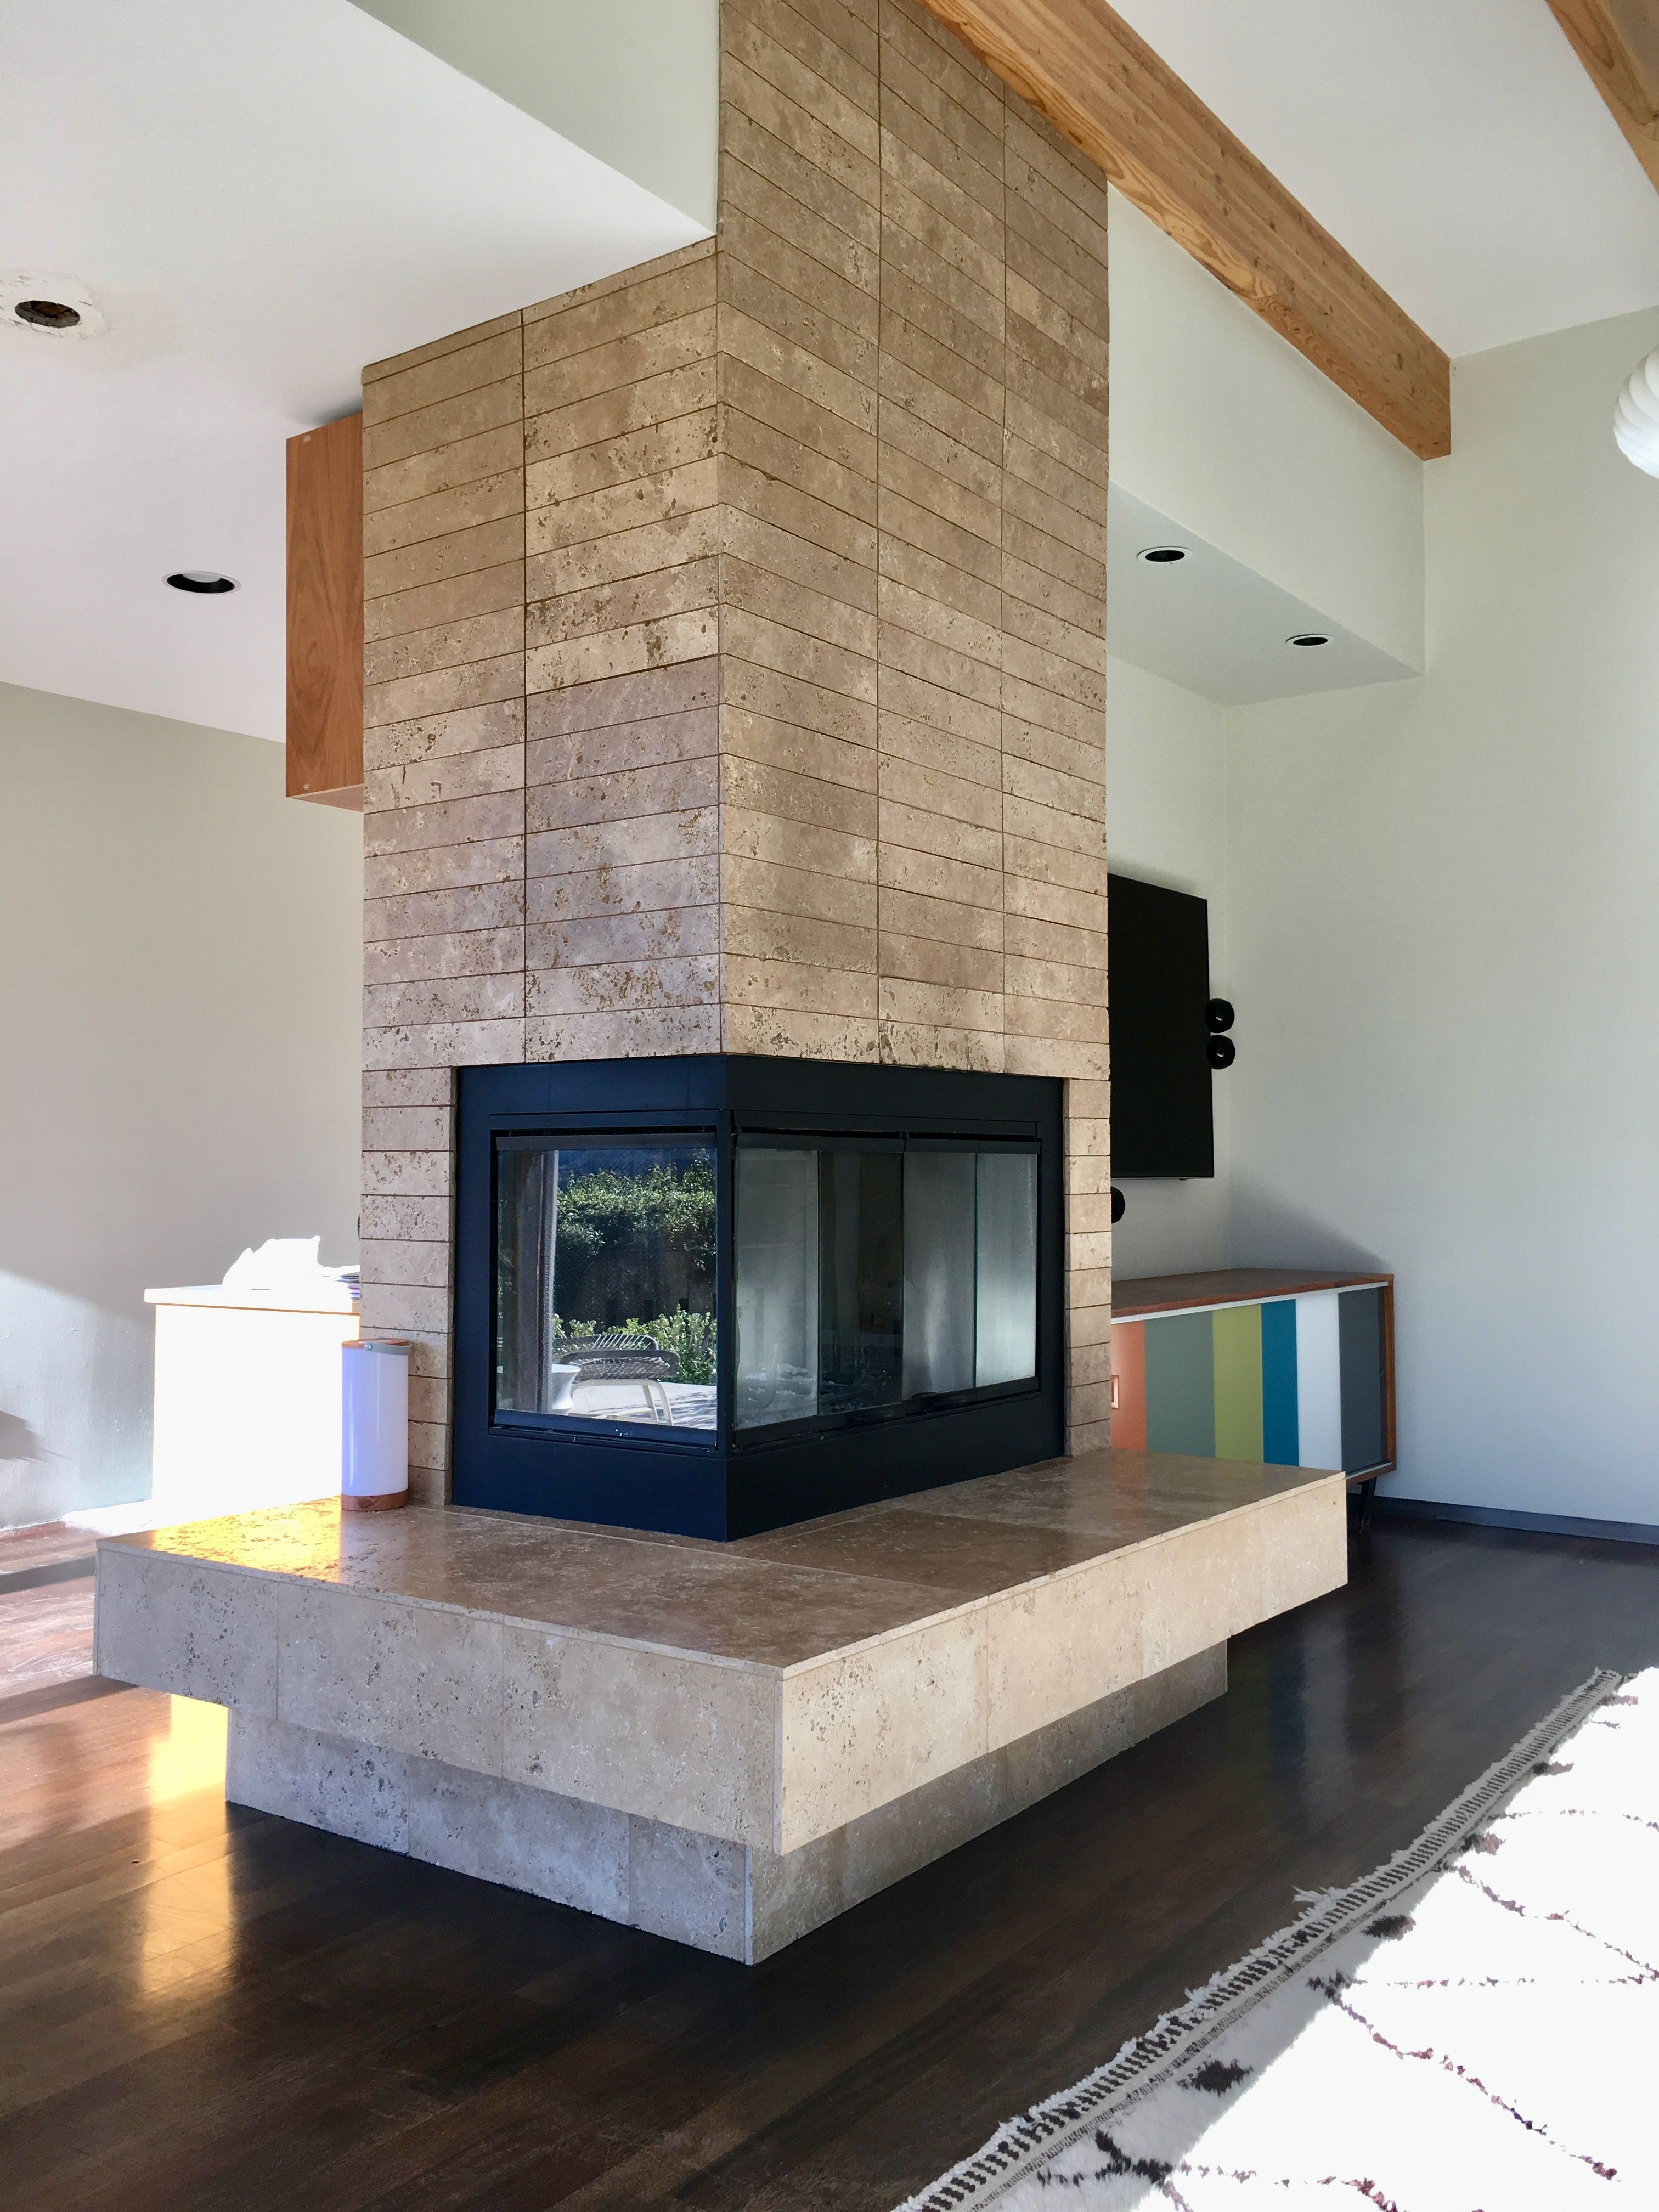 Existing Fireplace I Suggest Removing Hearth And Removing Upper Tile On Soffit And Changing Material To A More Earthy Color Of Ti Fireplace Design Home Decor